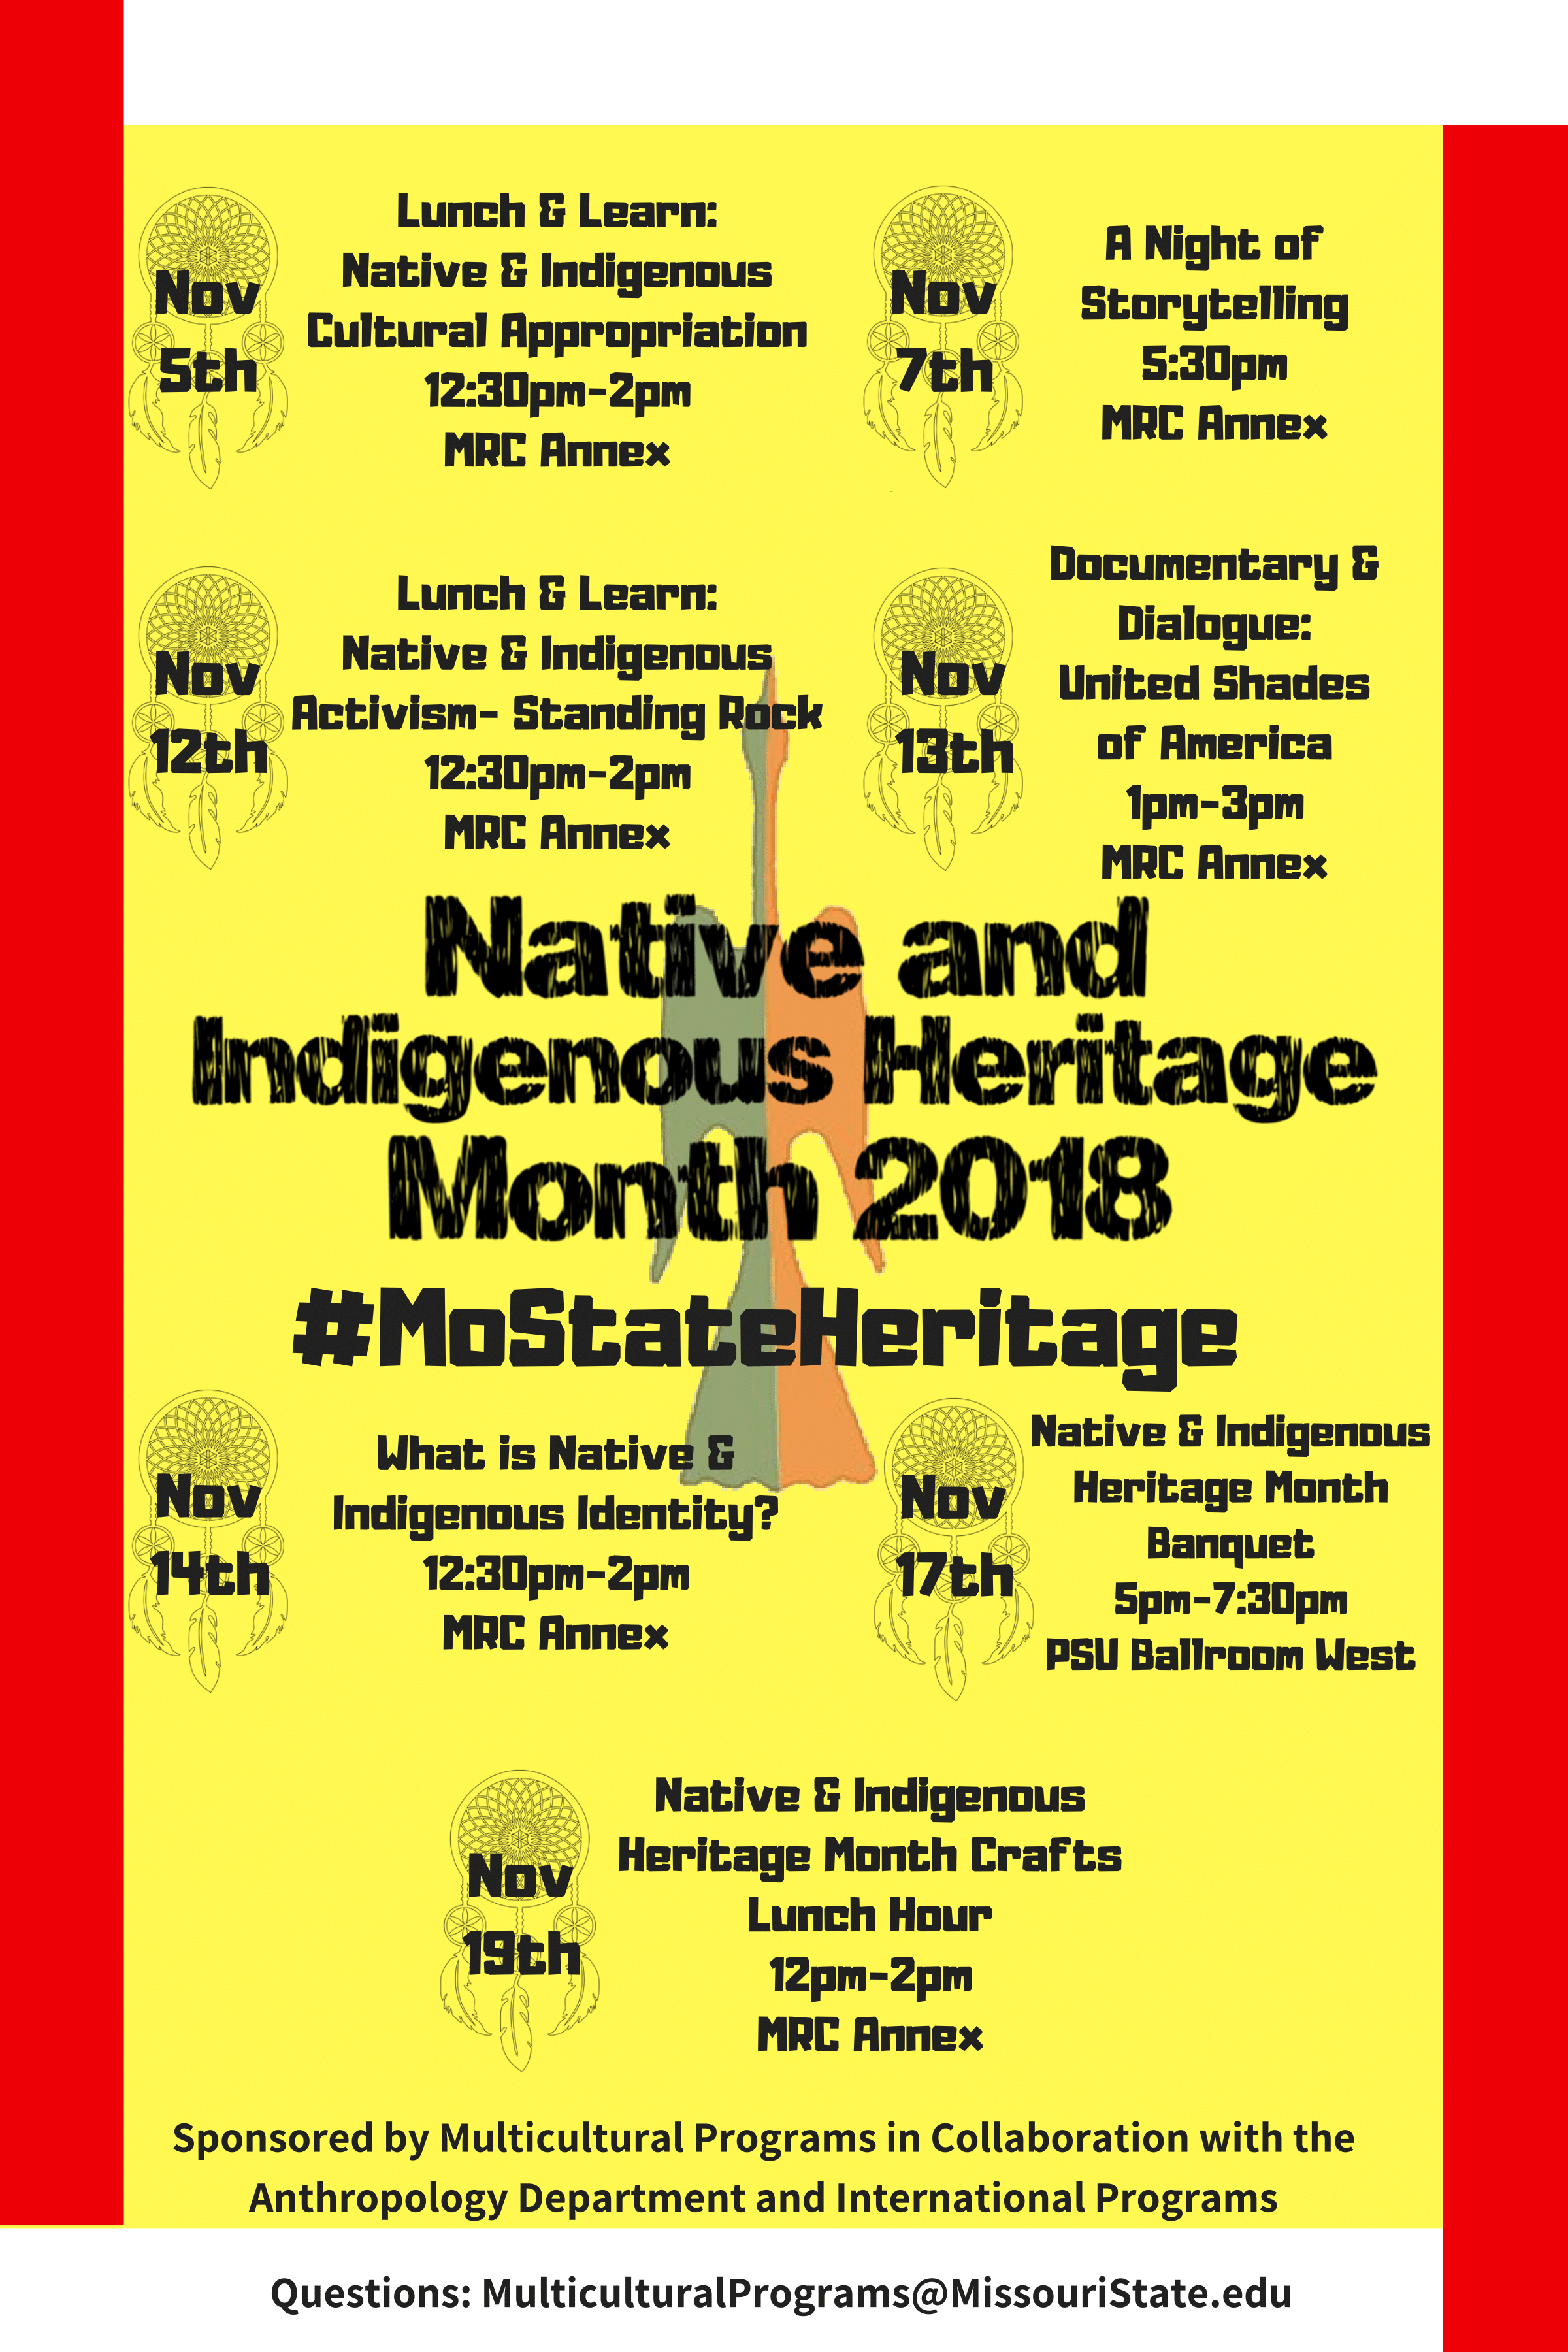 Native and Indigenous Heritage Month 2018